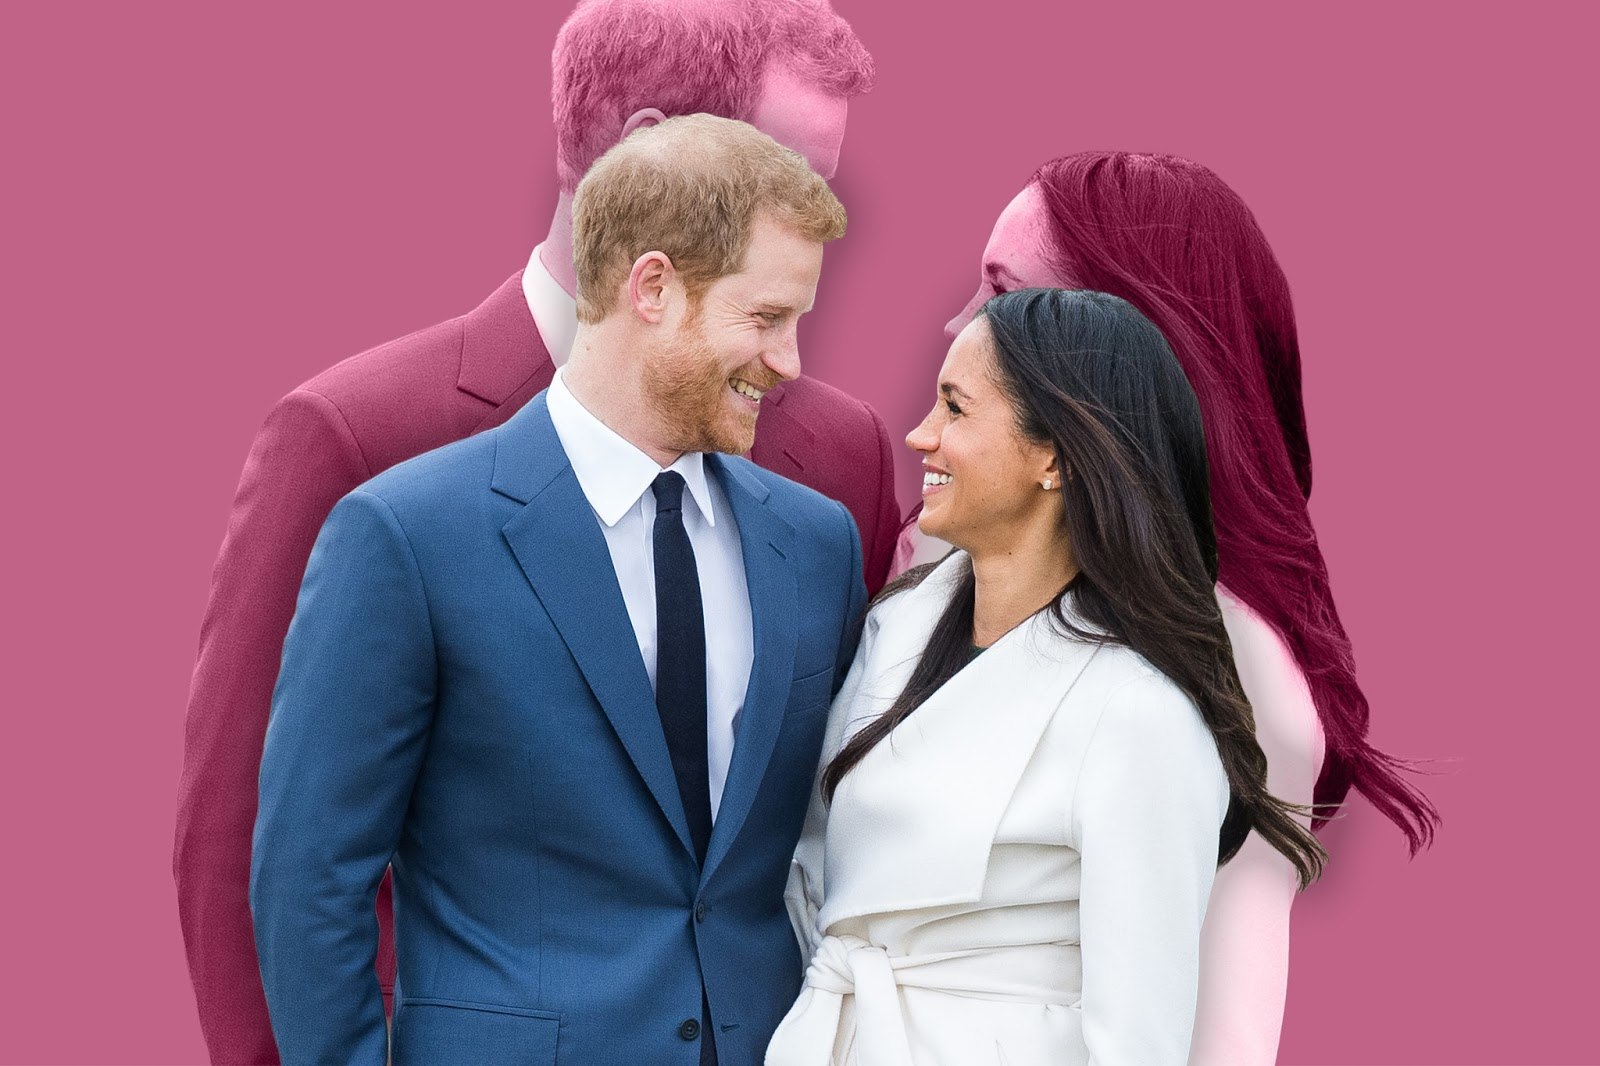 Prince Harrys Relationship with Meghan Markle - Official Website - BenjaminMadeira